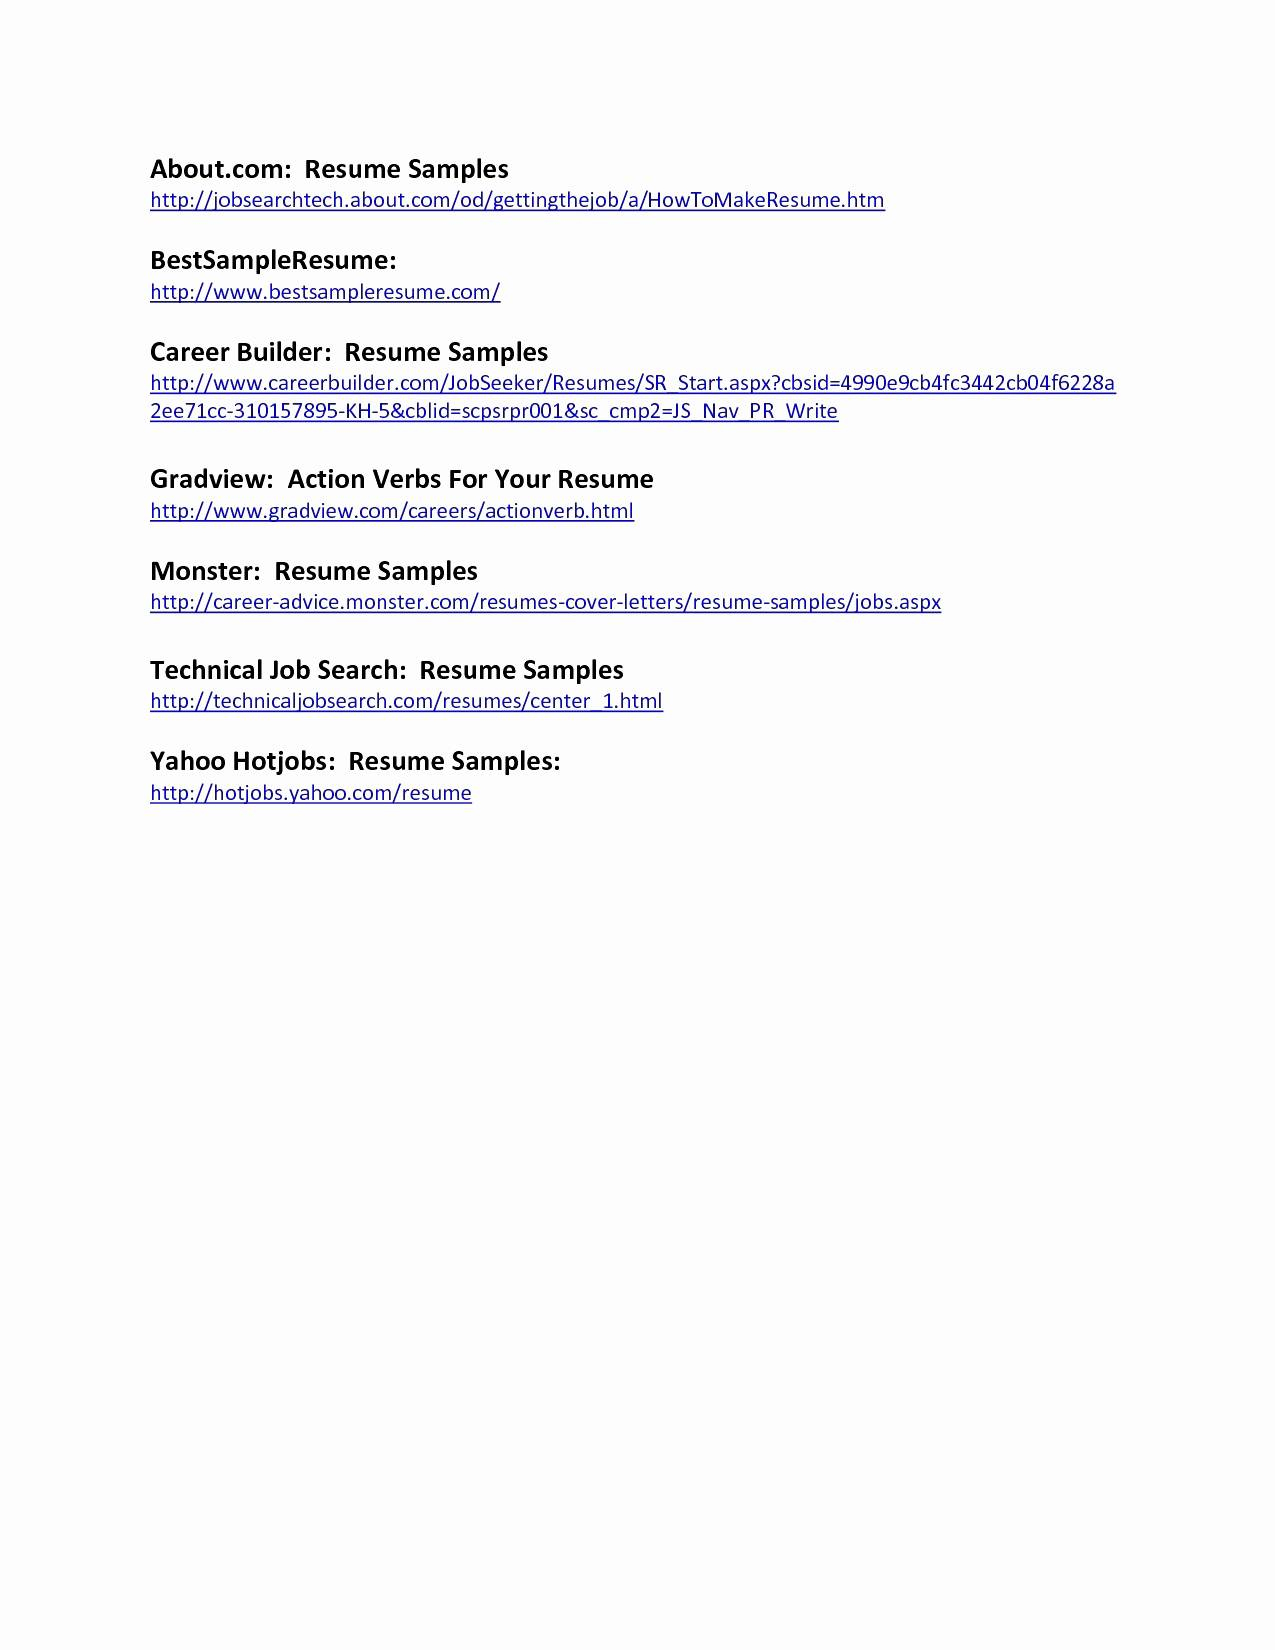 Jimmy Sweeney Cover Letter Template - Admissions Recruiter Cover Letter Elegant Jimmy Sweeney Cover